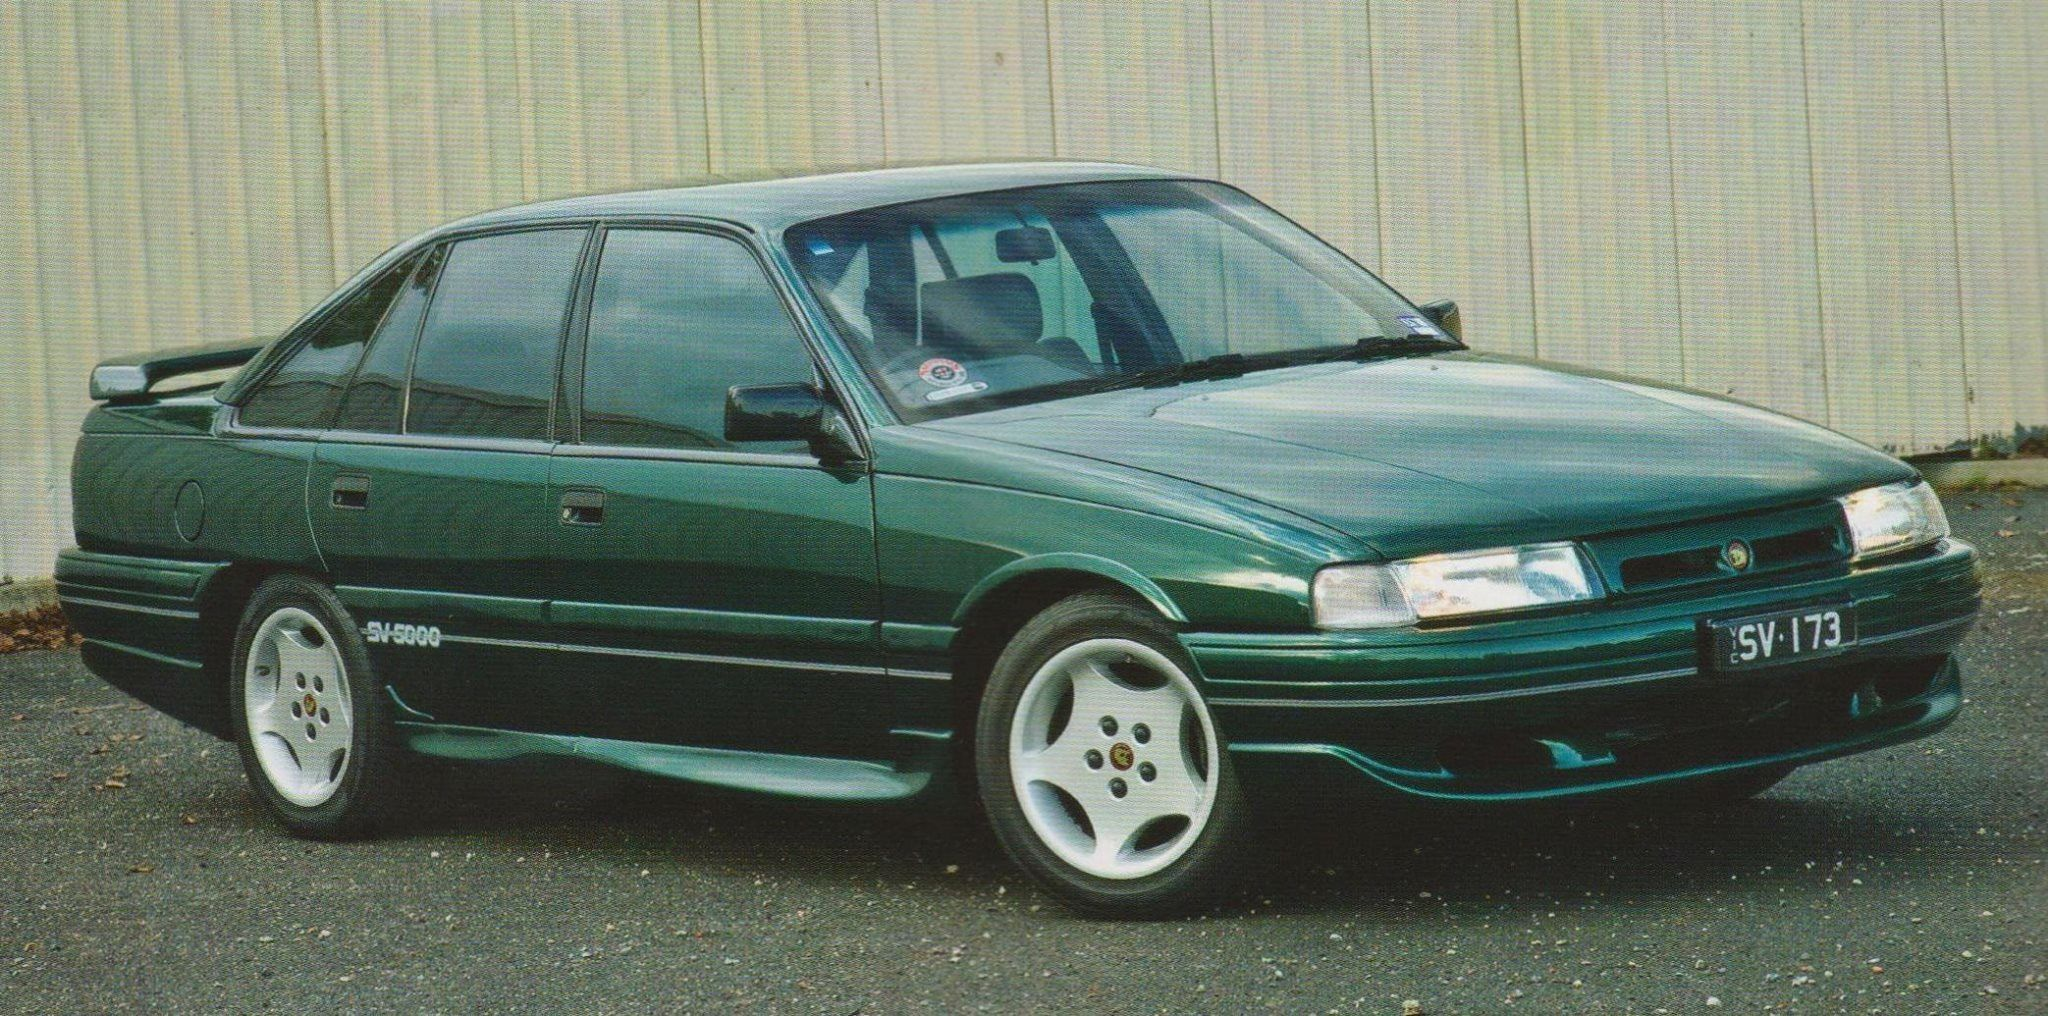 small resolution of hsv sv5000 1988 racing green 5 0ltr v8 200kw 410nm